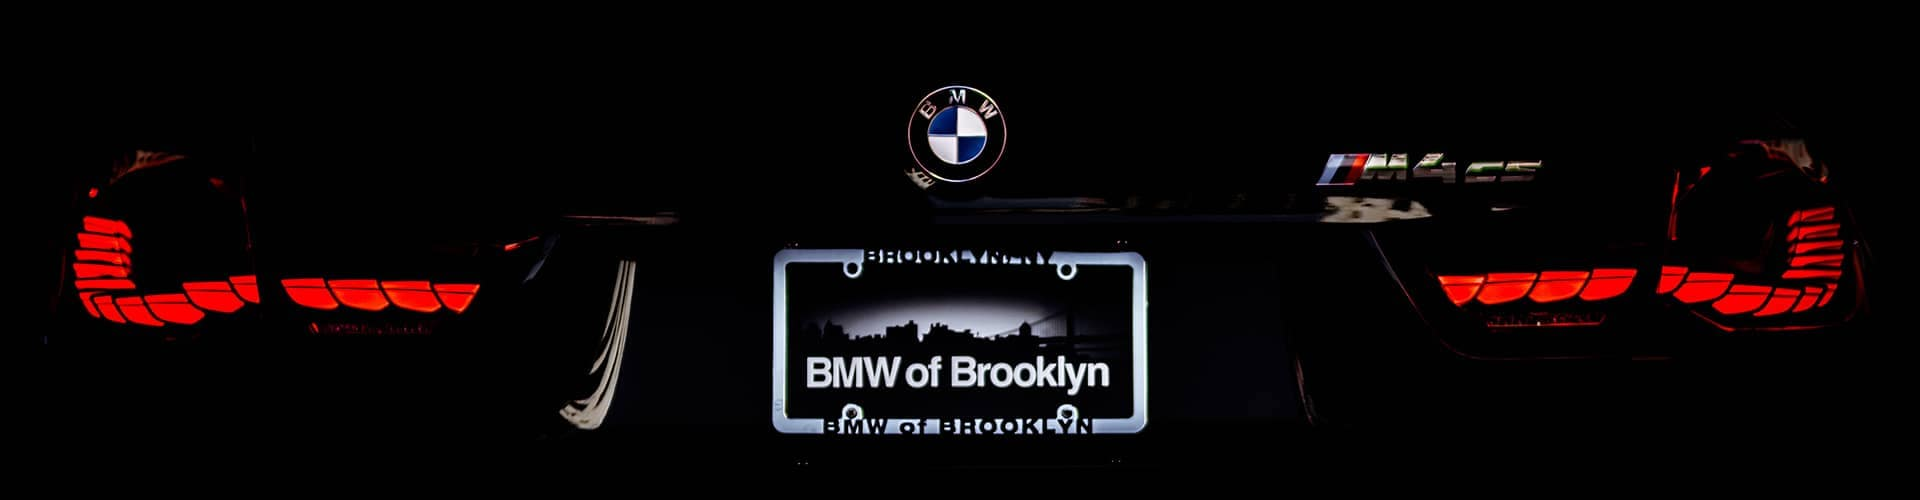 BMW of Brooklyn